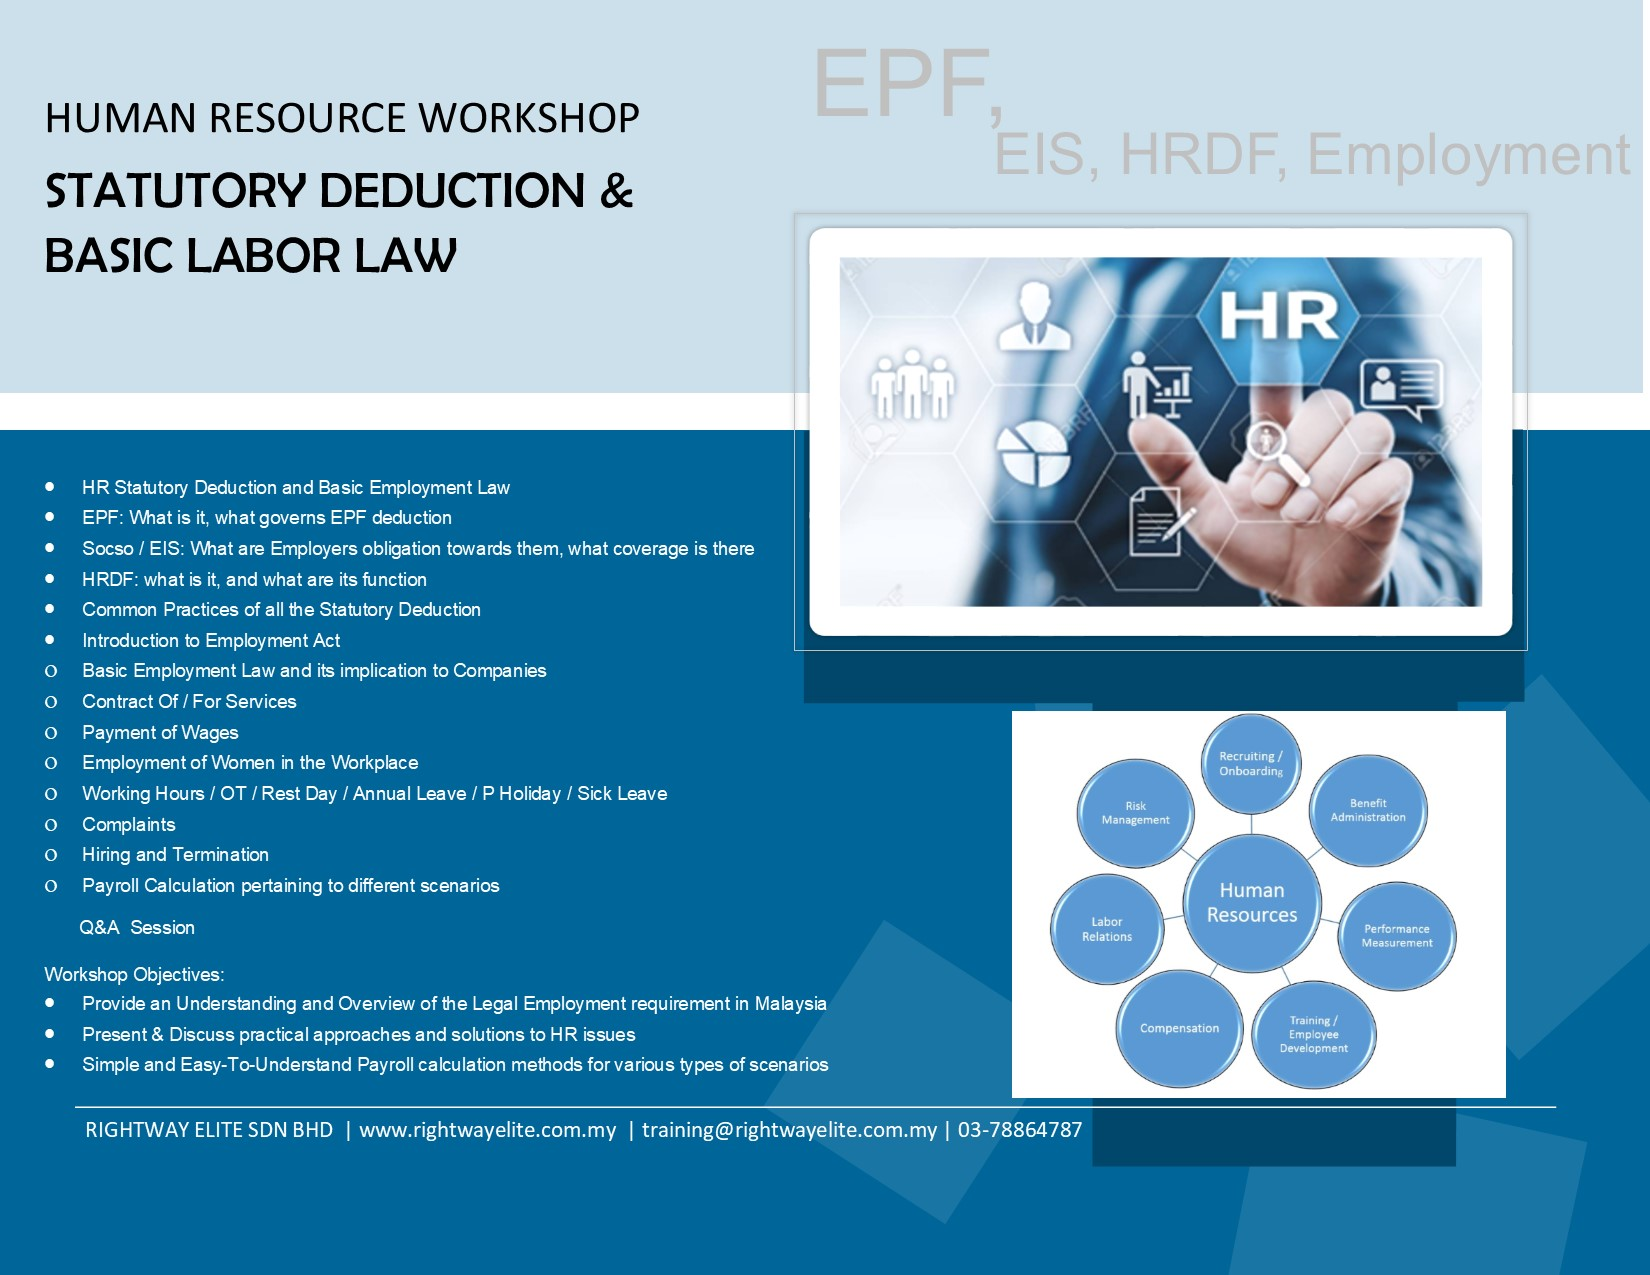 HUMAN RESOURCE WORKSHOP – STATUTORY DEDUCTION & BASIC LABOR LAW